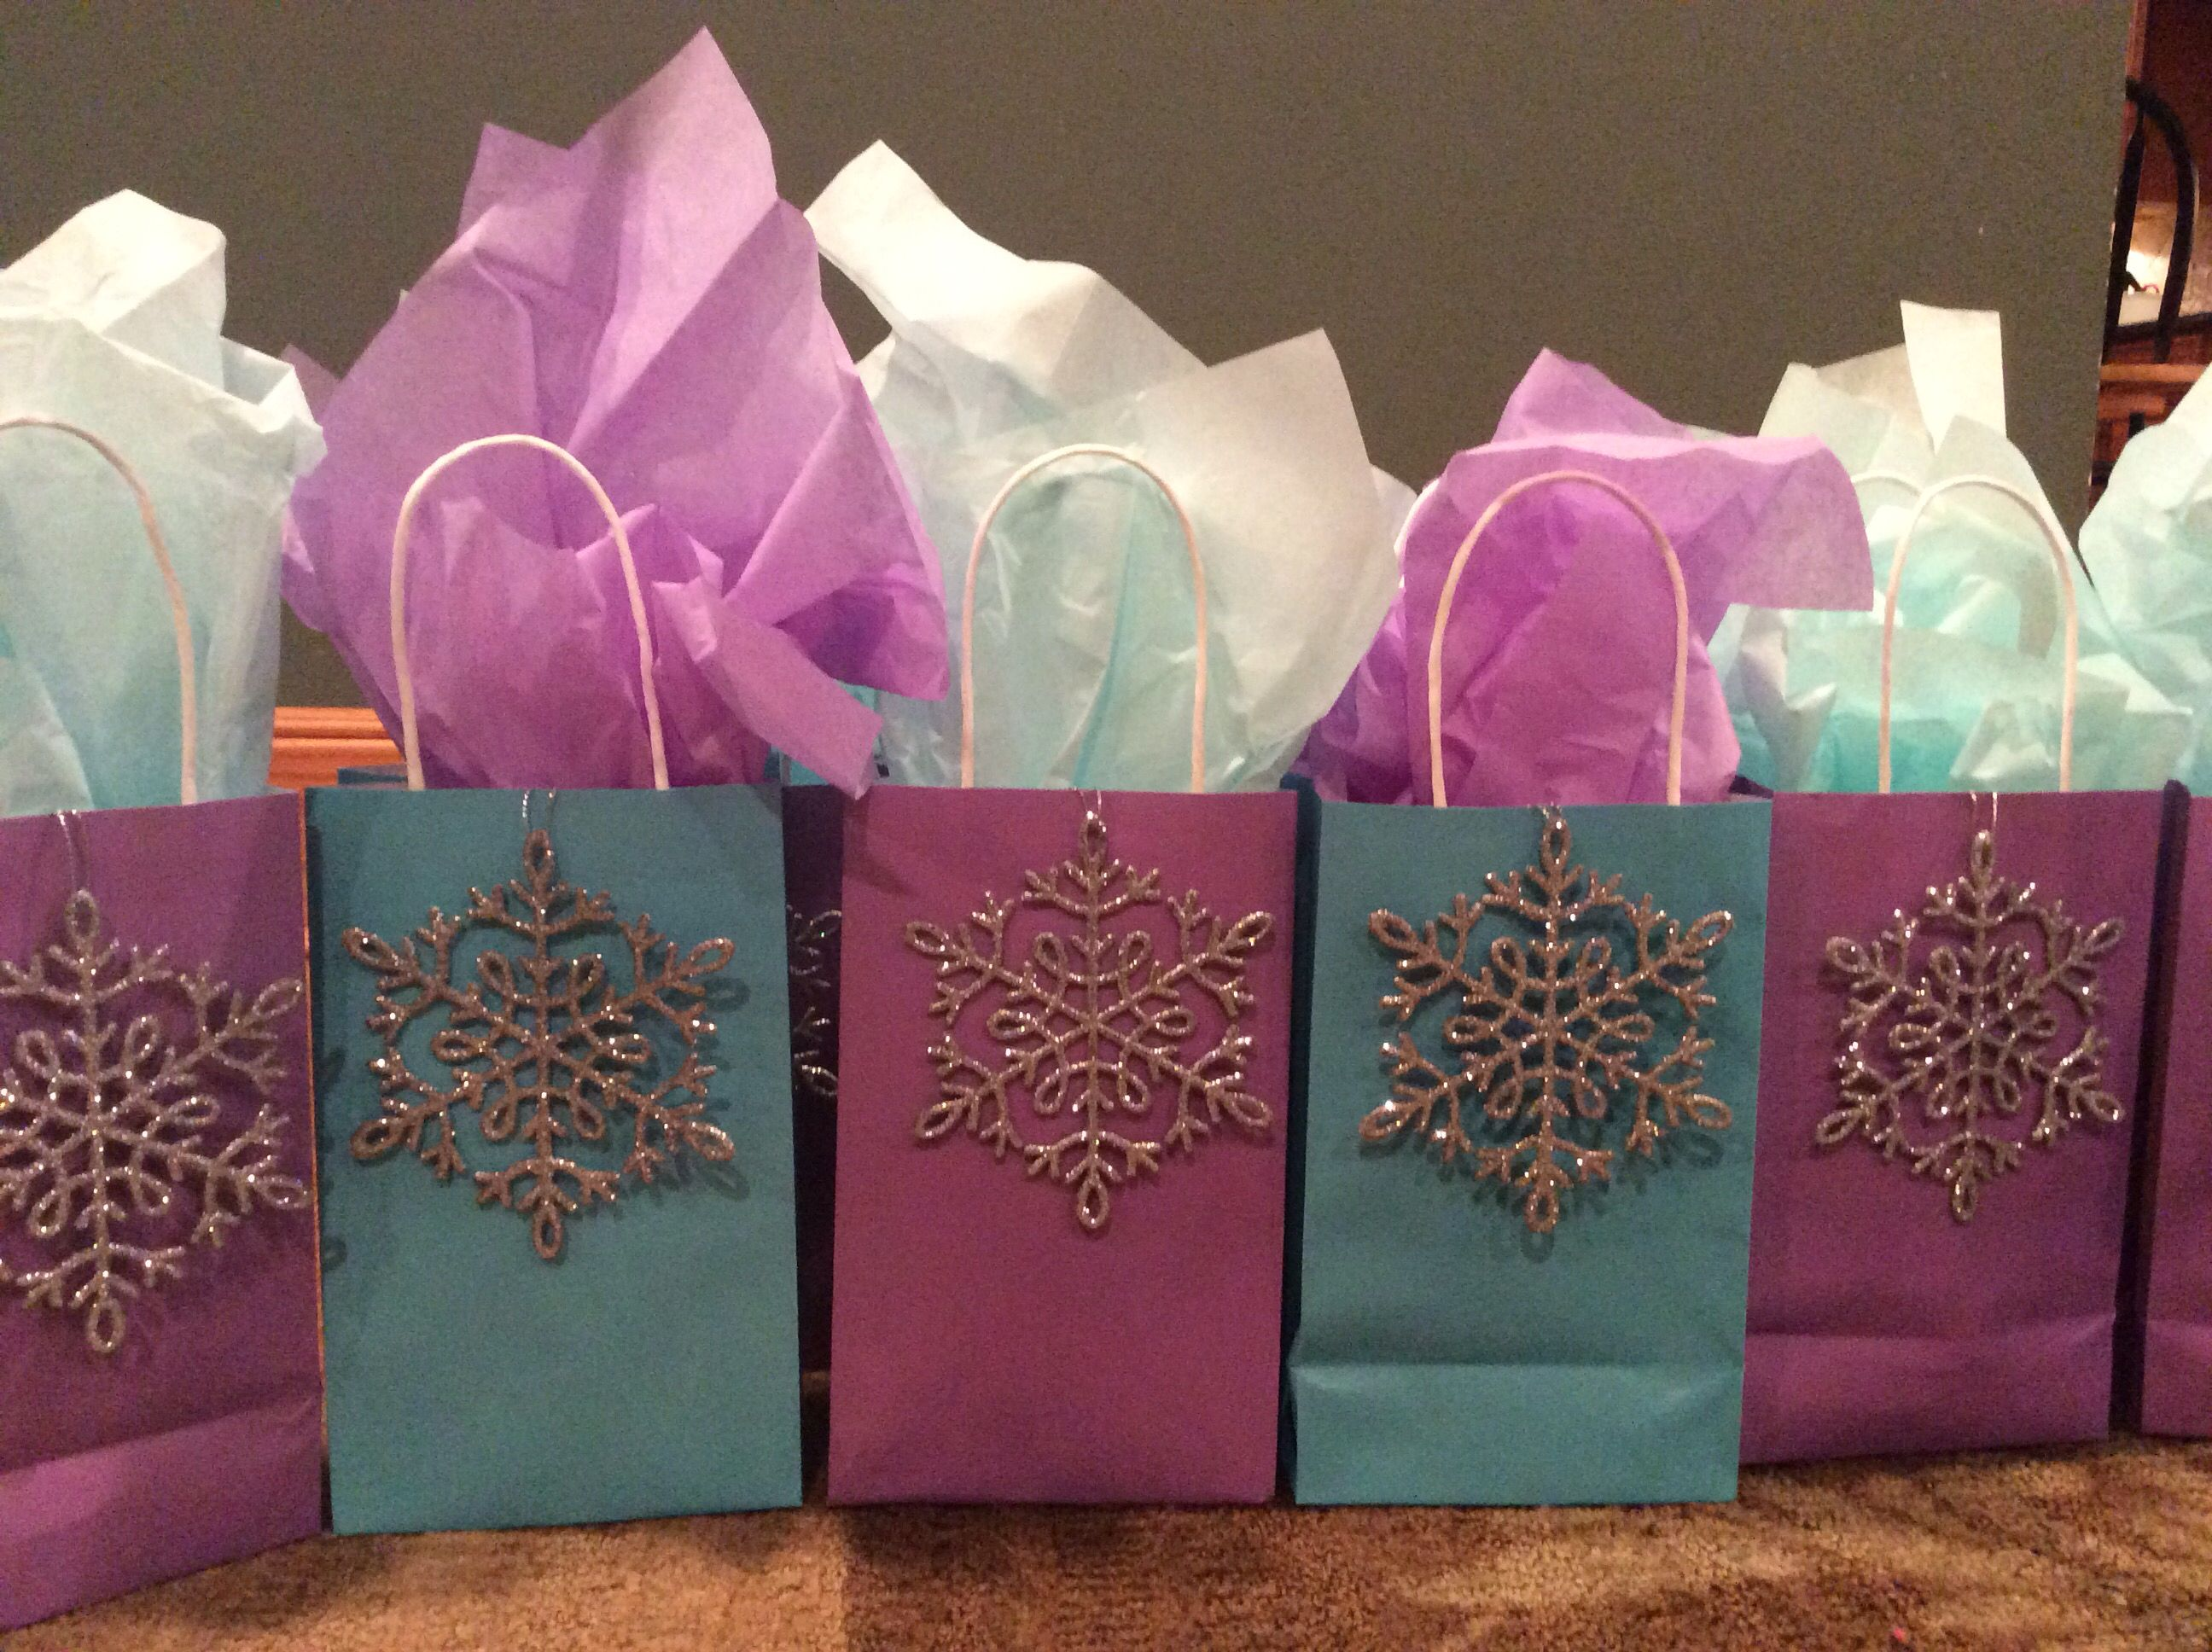 Frozen Theme Goody Bags Each Bag Contains Hot Chocolate Marshmallows A Peppermint Stirrer And Soft Fluffy Pair Of Gloves